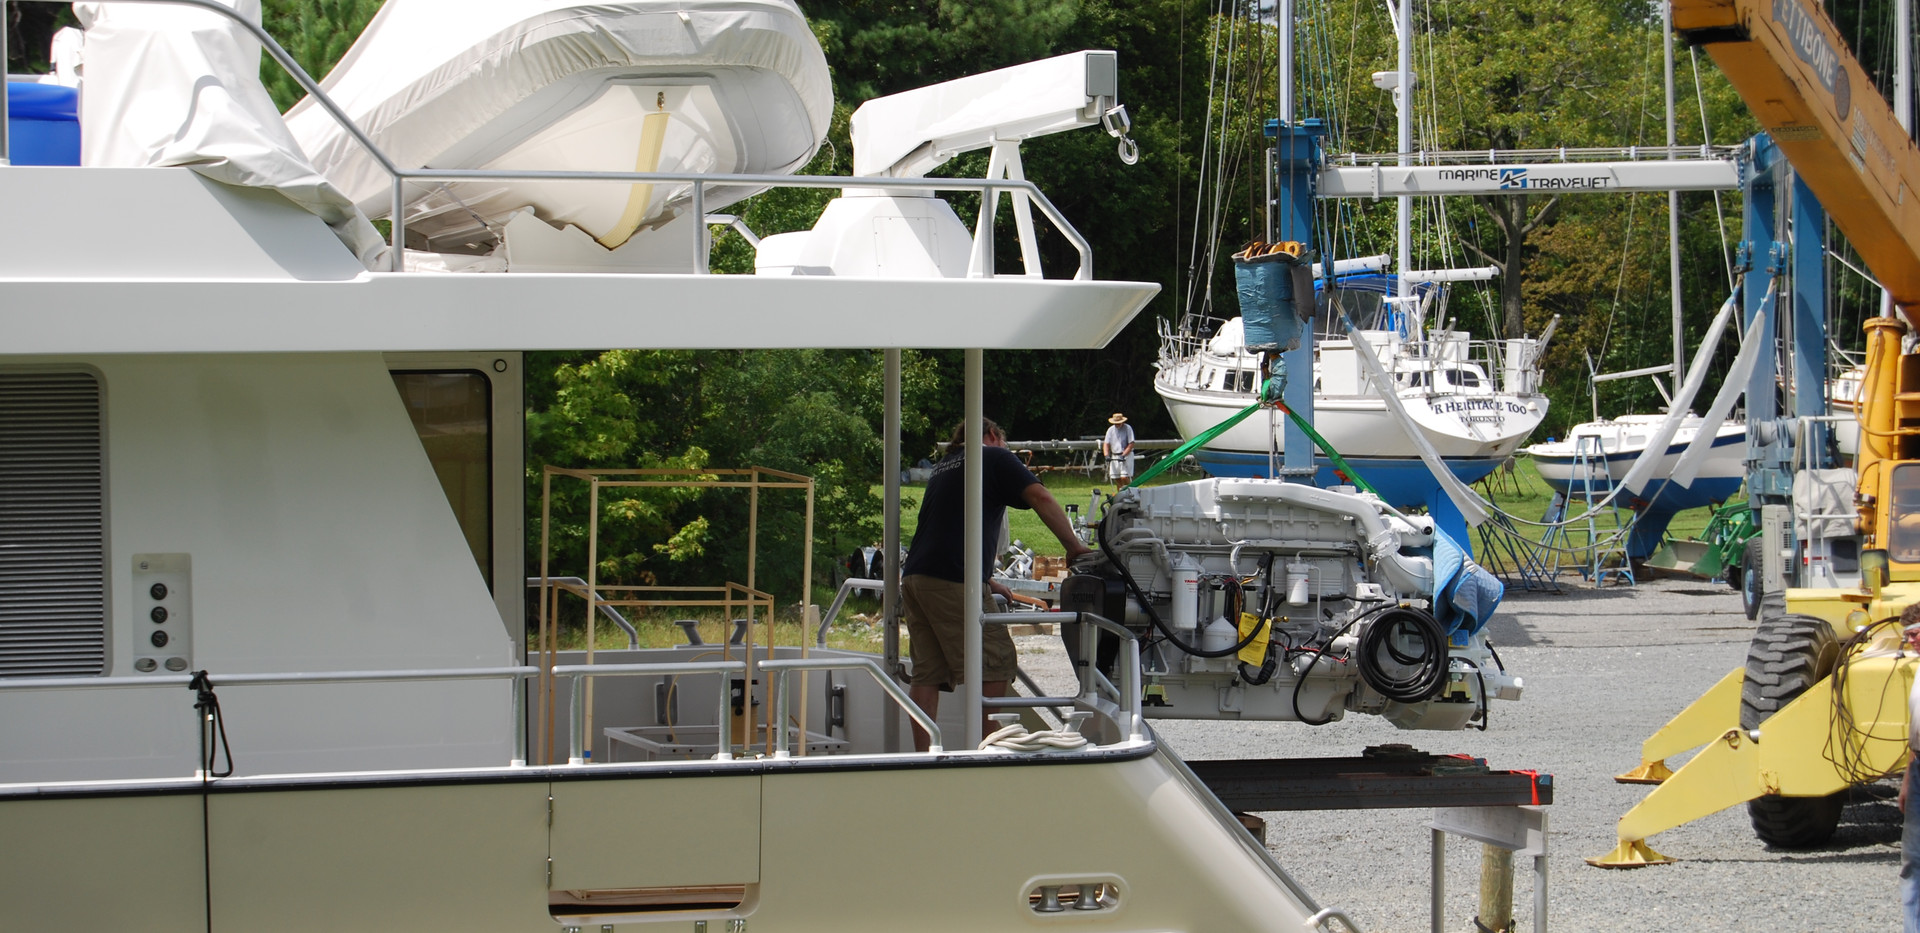 """Installation of new engines for Snowbird 73, """"Retired Sailor III"""", for repower and upgrade of all systems."""